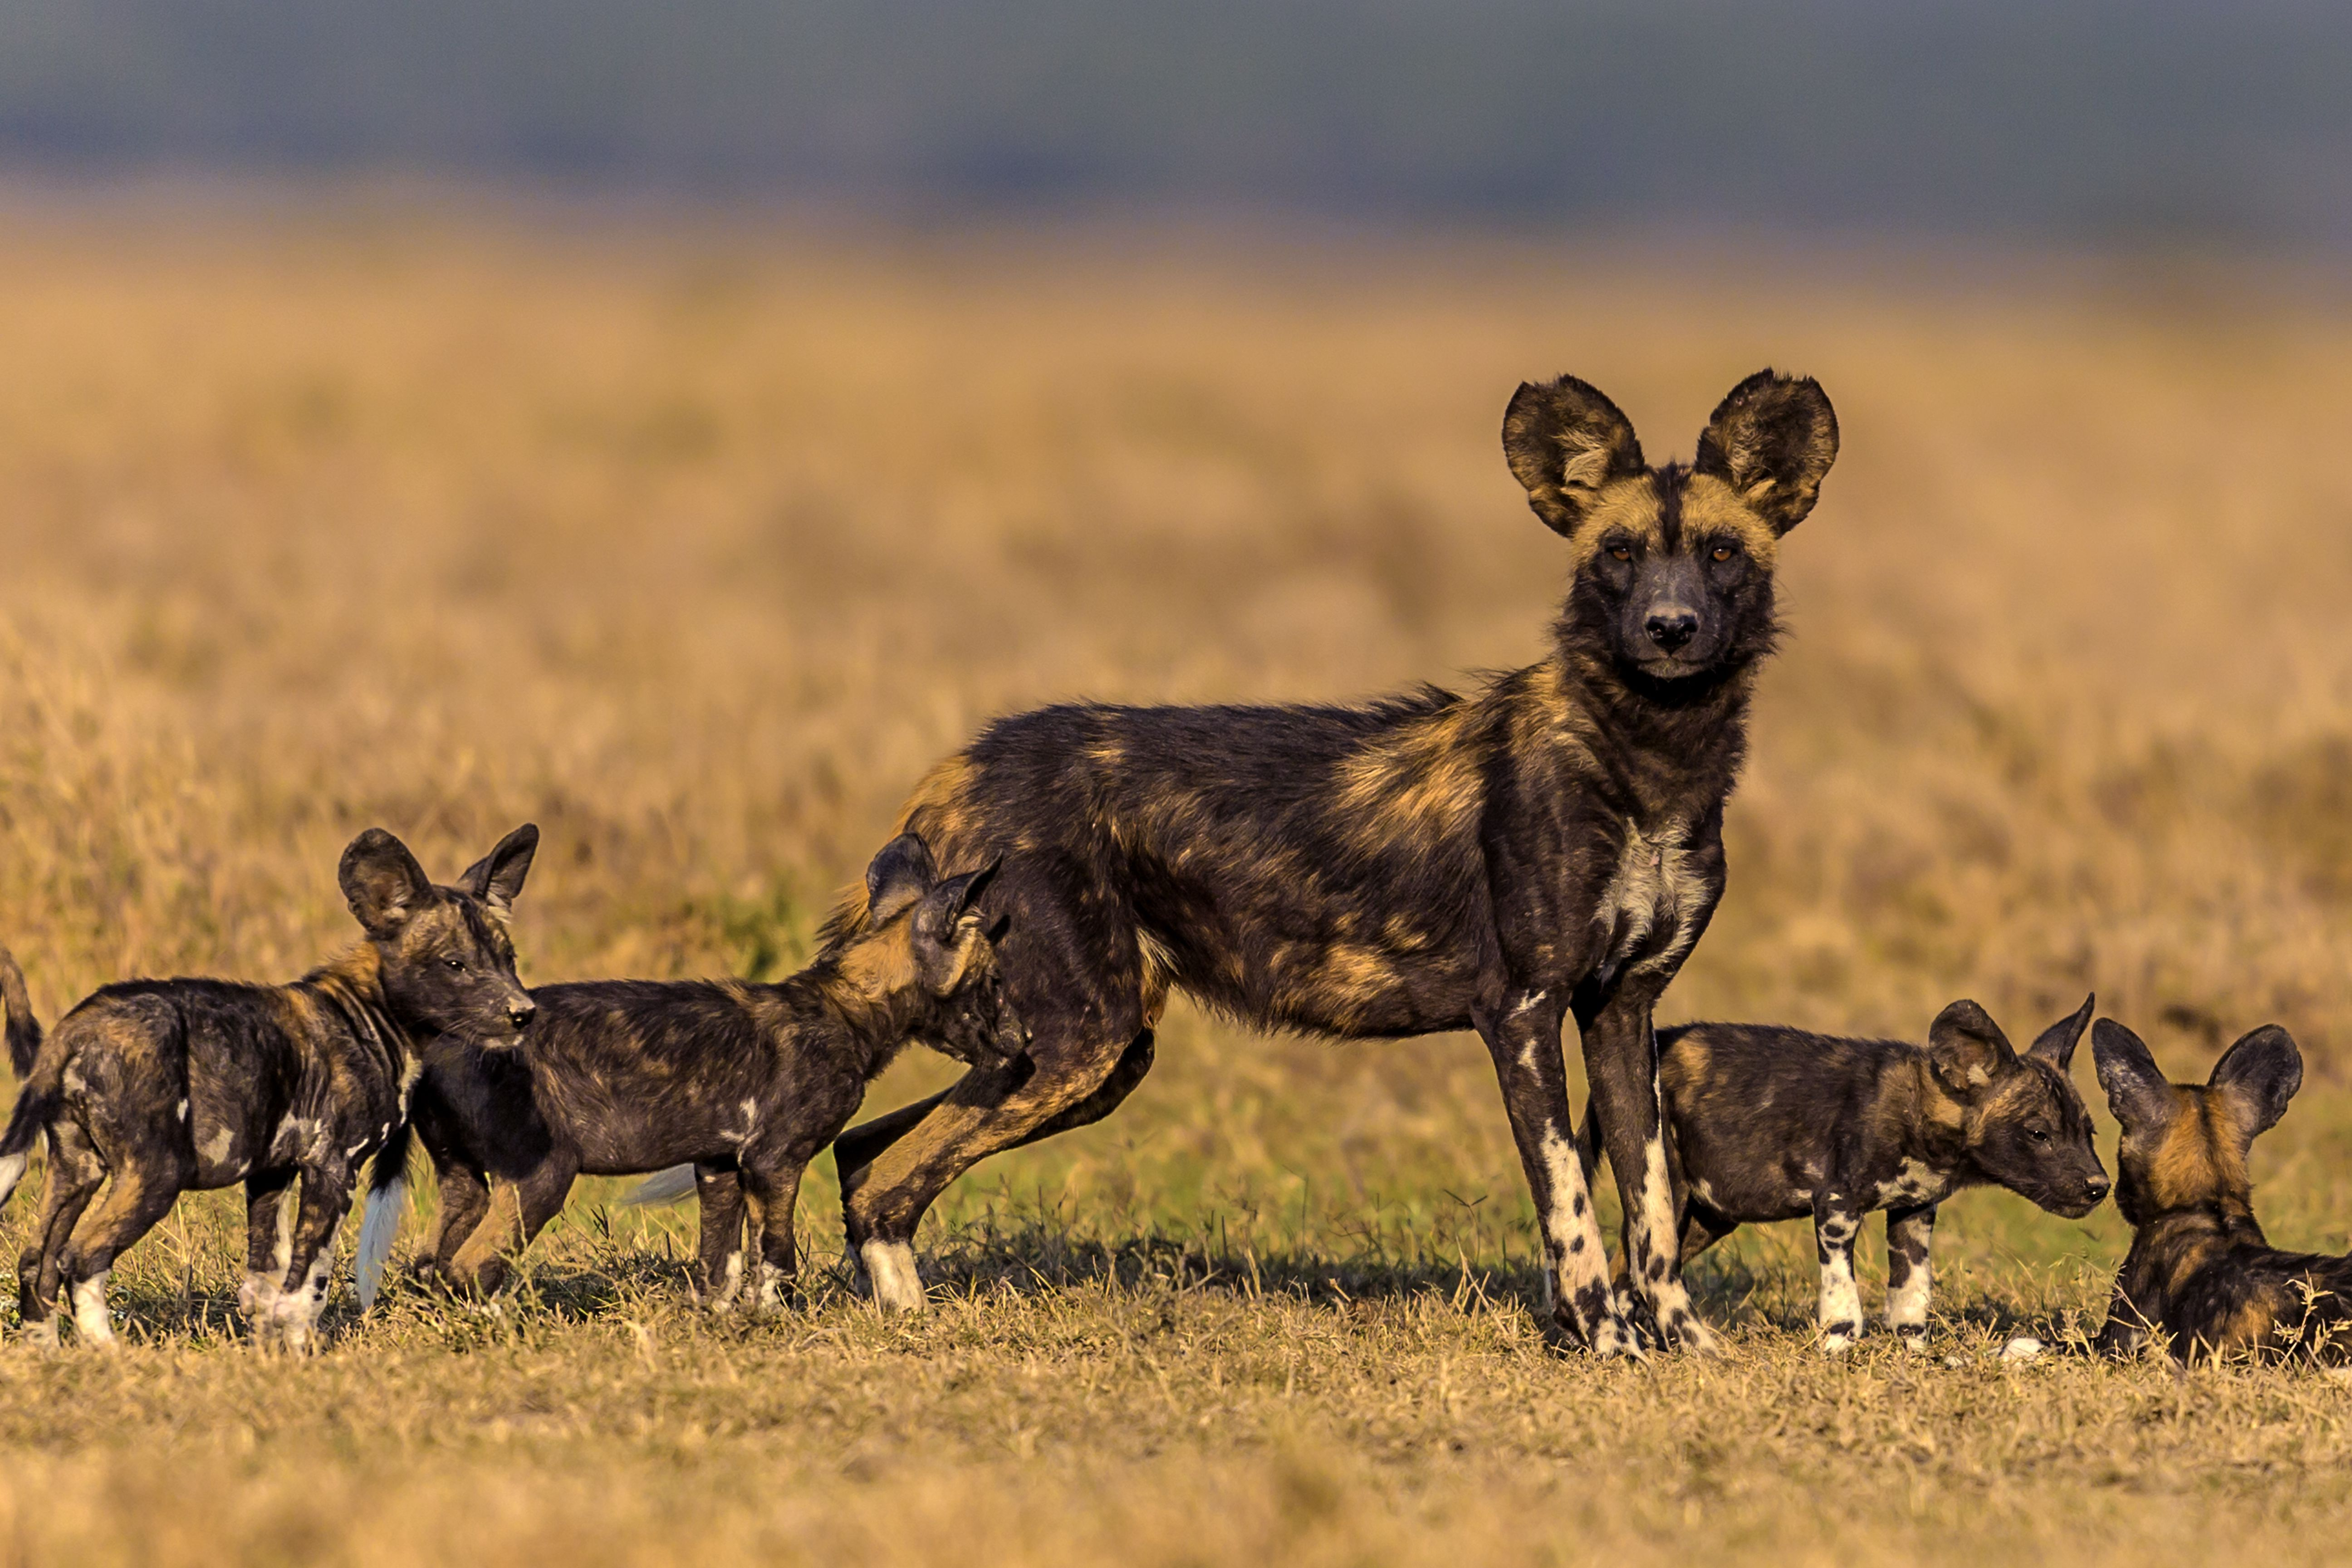 Females guard their puppies from predators and other pack members, rather than hunt.